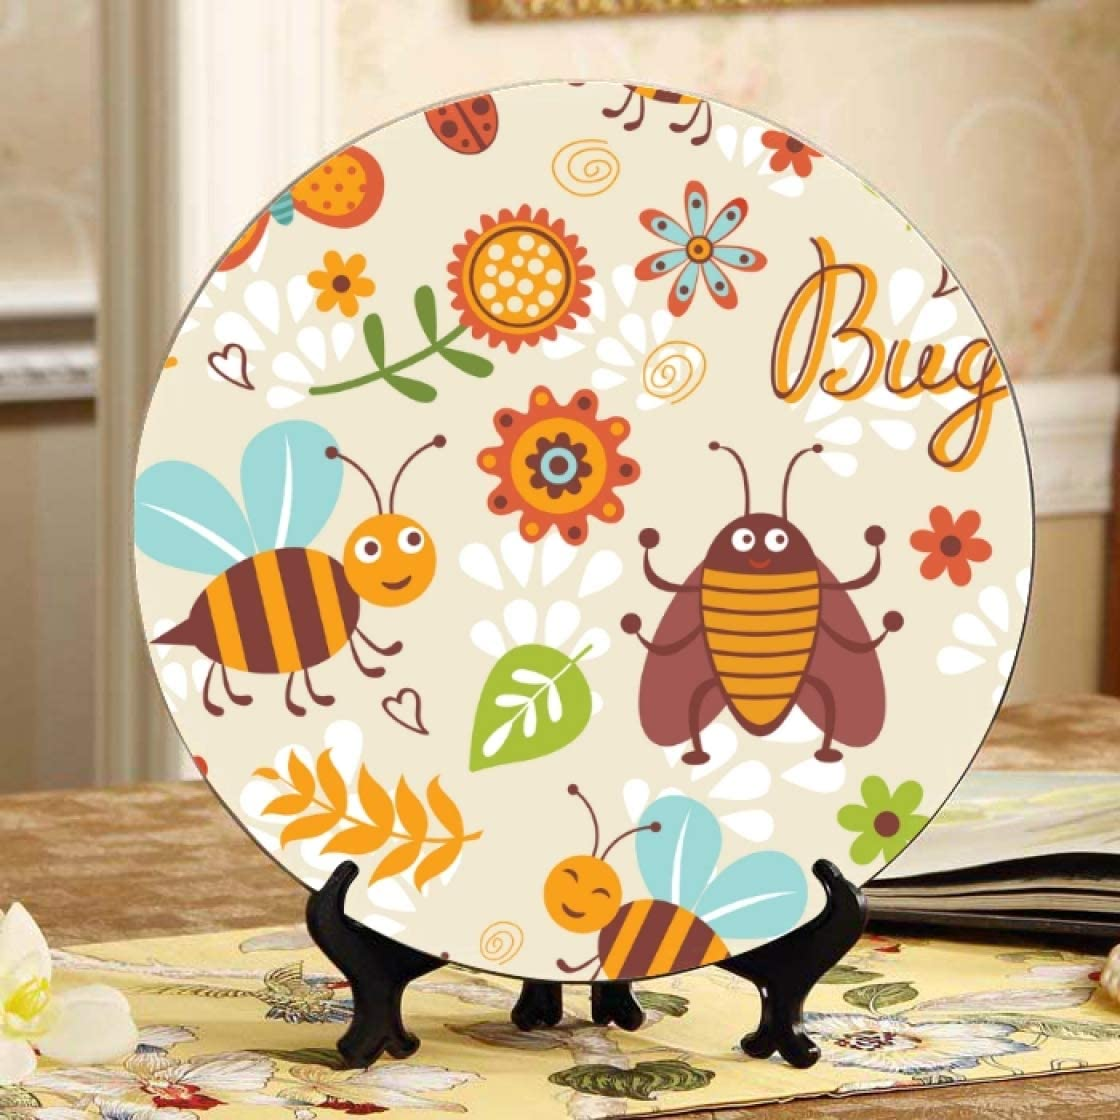 Lajro Honey Flower Heart Ranking TOP17 Bee Challenge the lowest price and Ceramic Plates Small Hive Wall